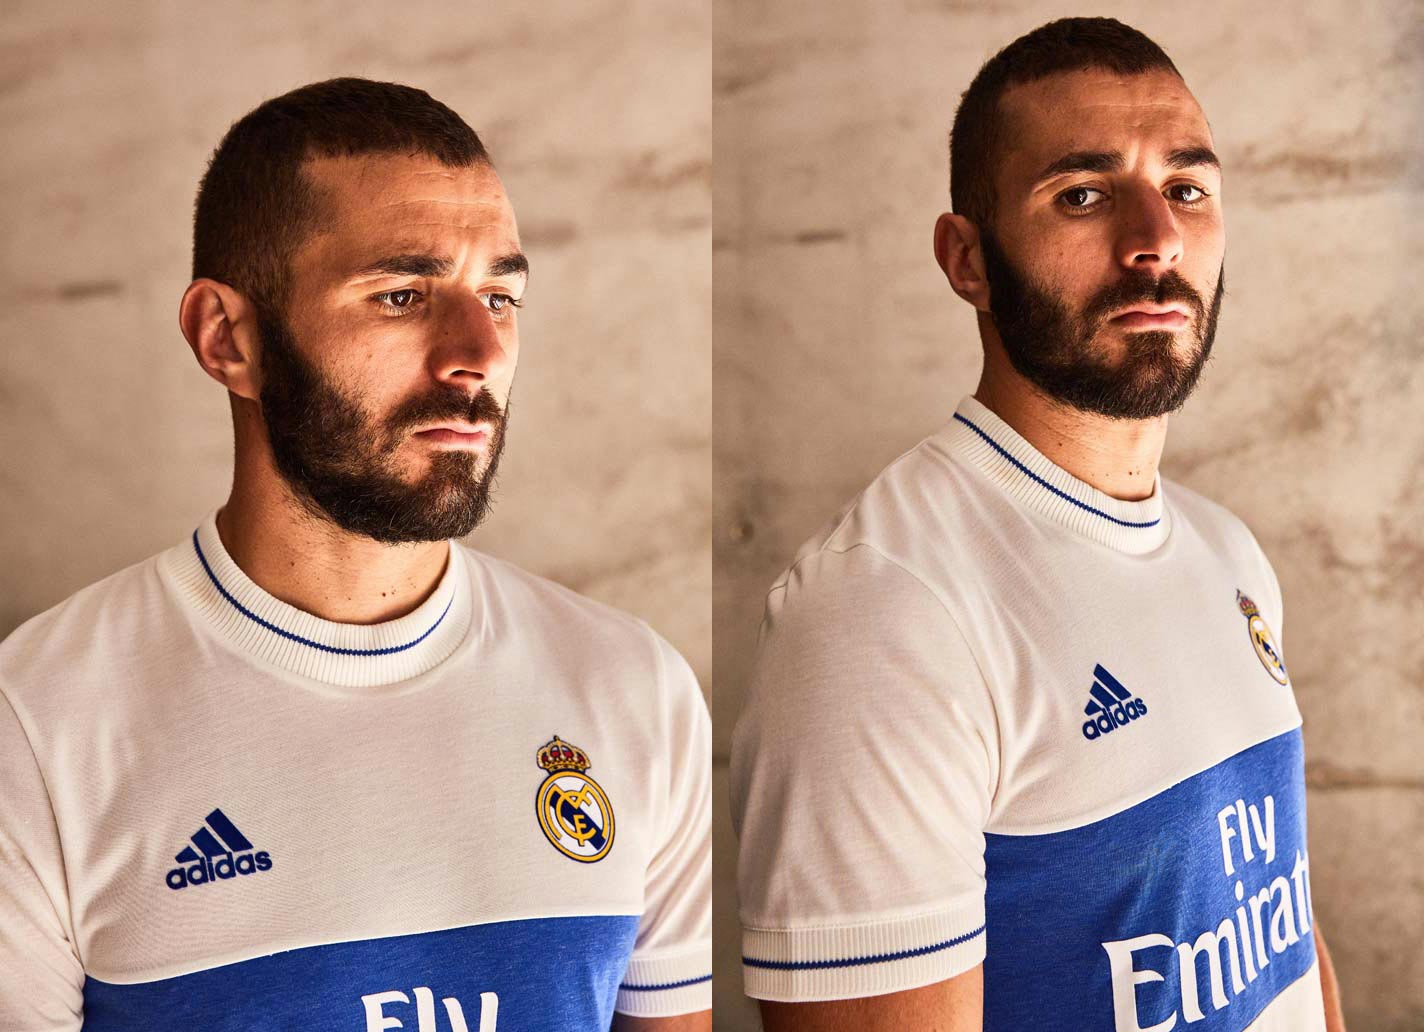 Real Madrid Icon Jersey